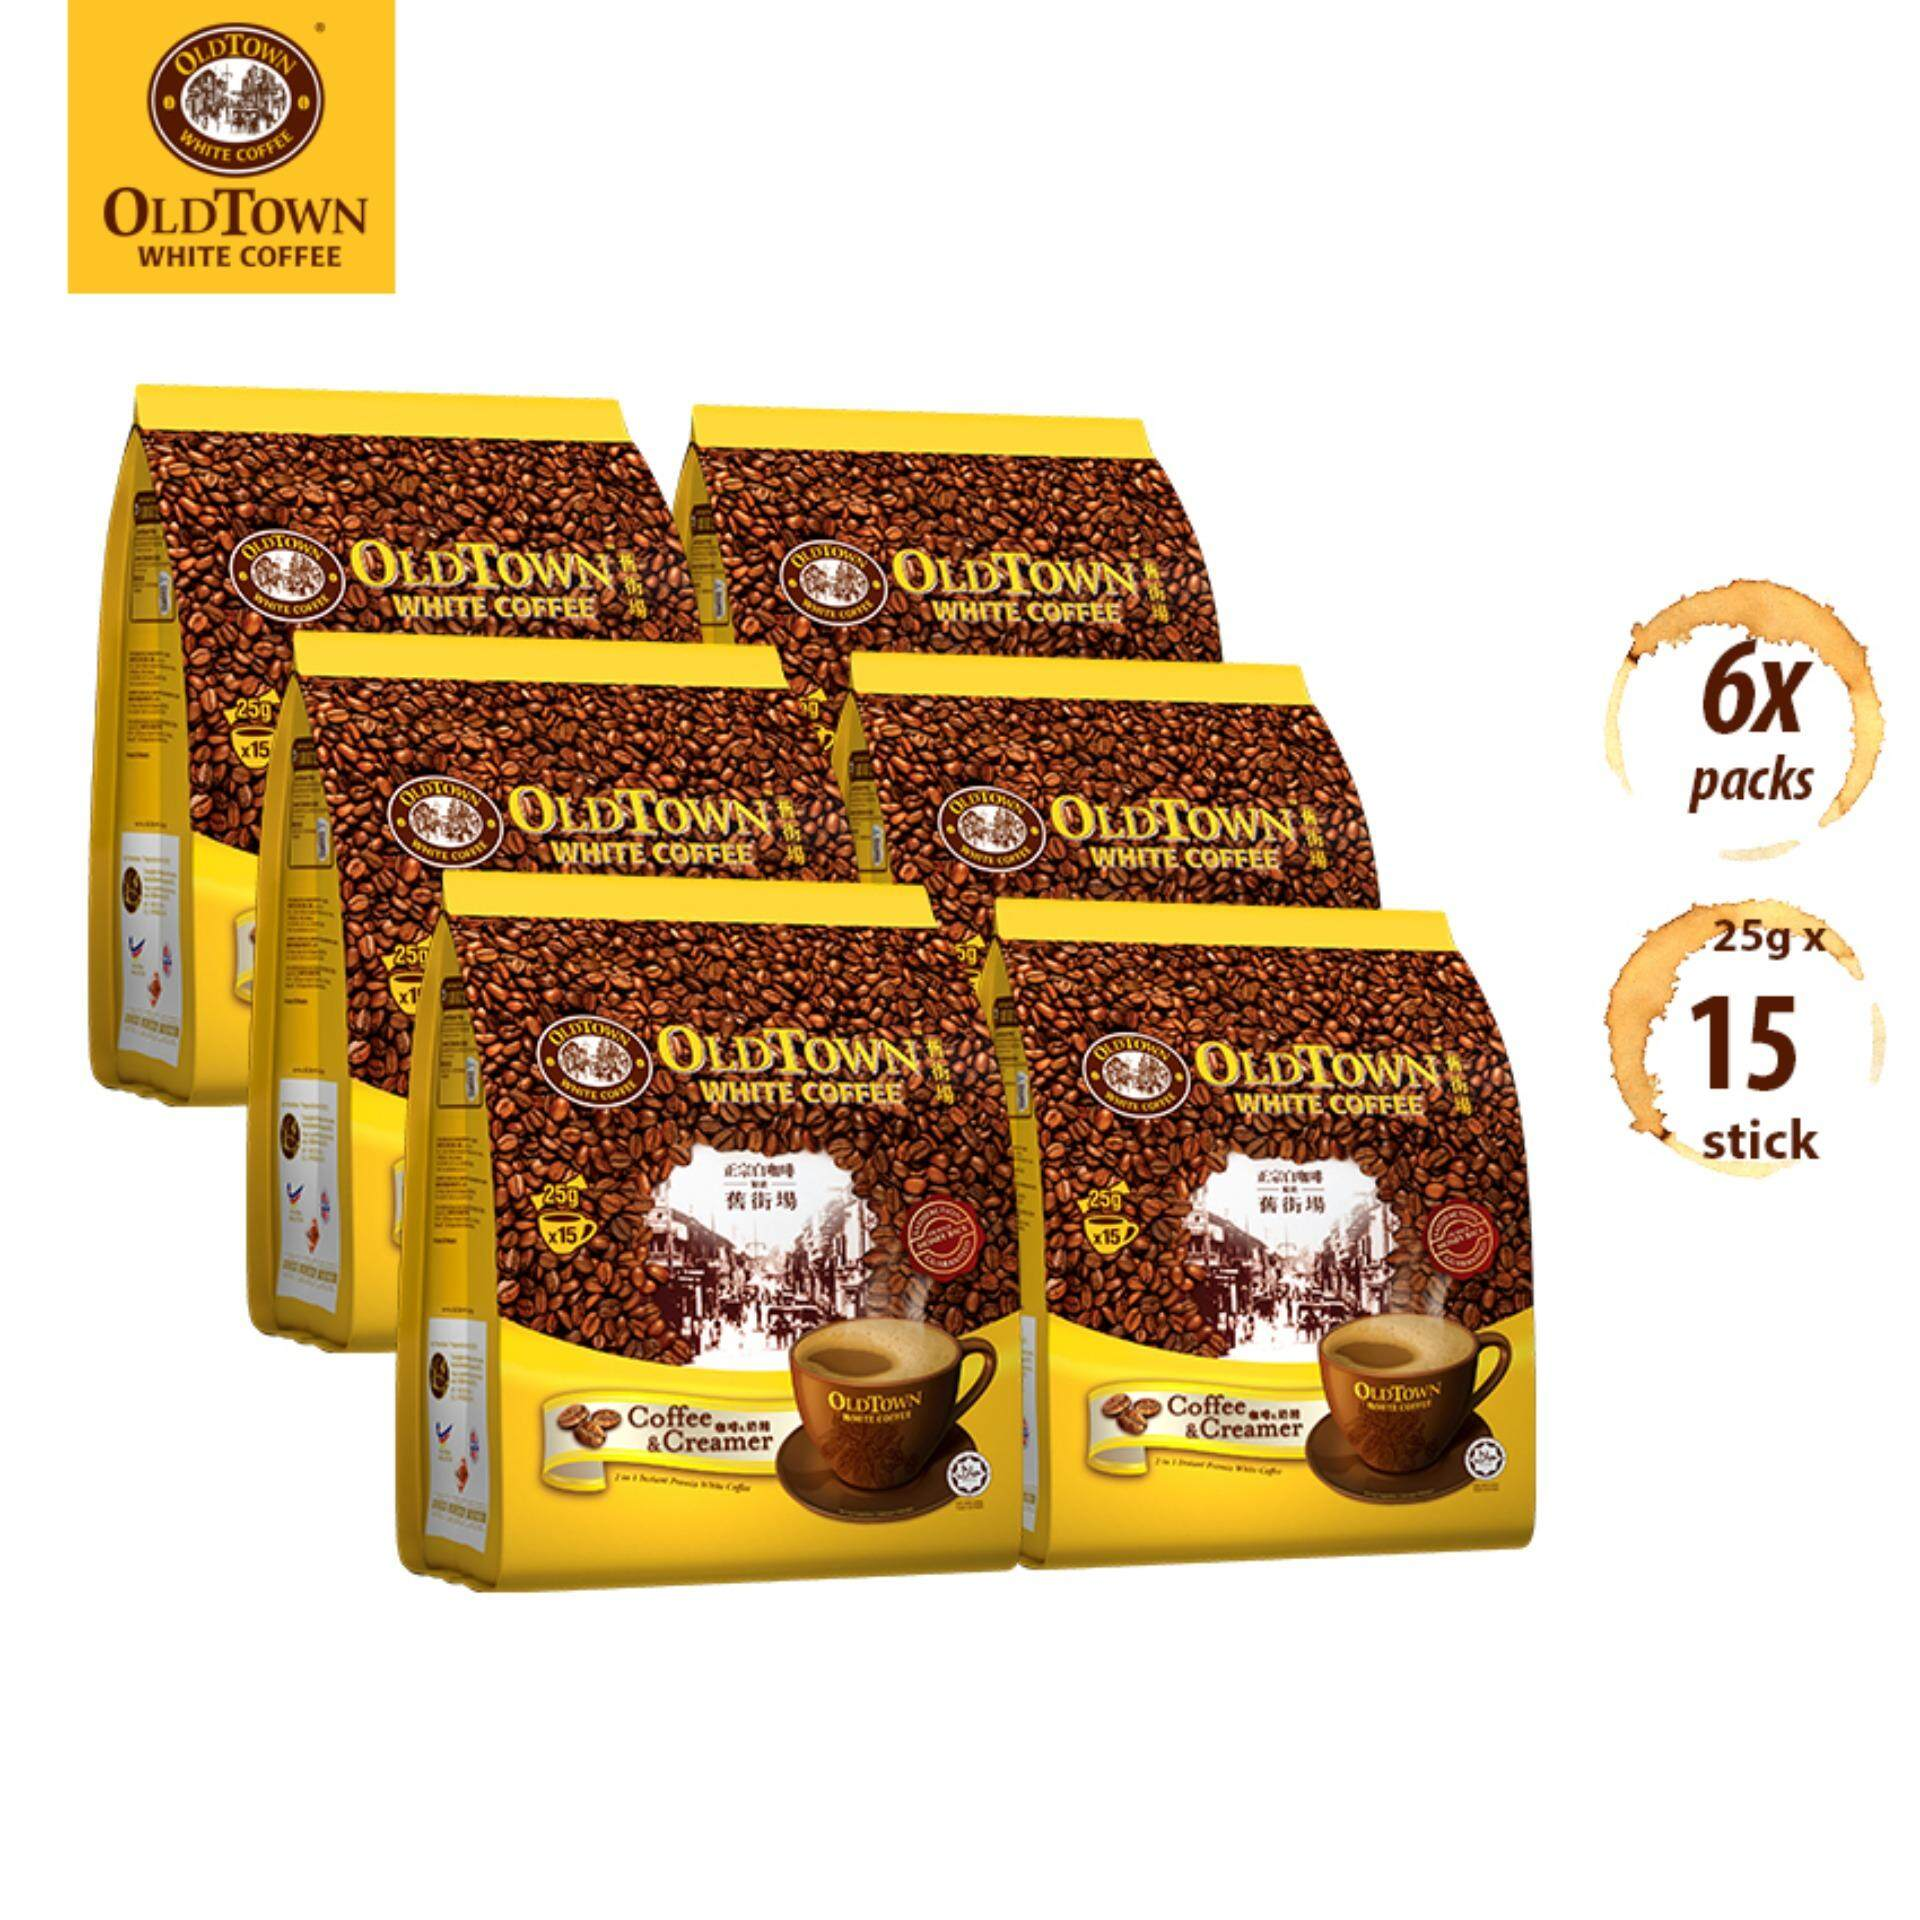 OLDTOWN White Coffee 2-in-1 Coffee & Creamer Instant Premix White Coffee (15S X 6 Packs)